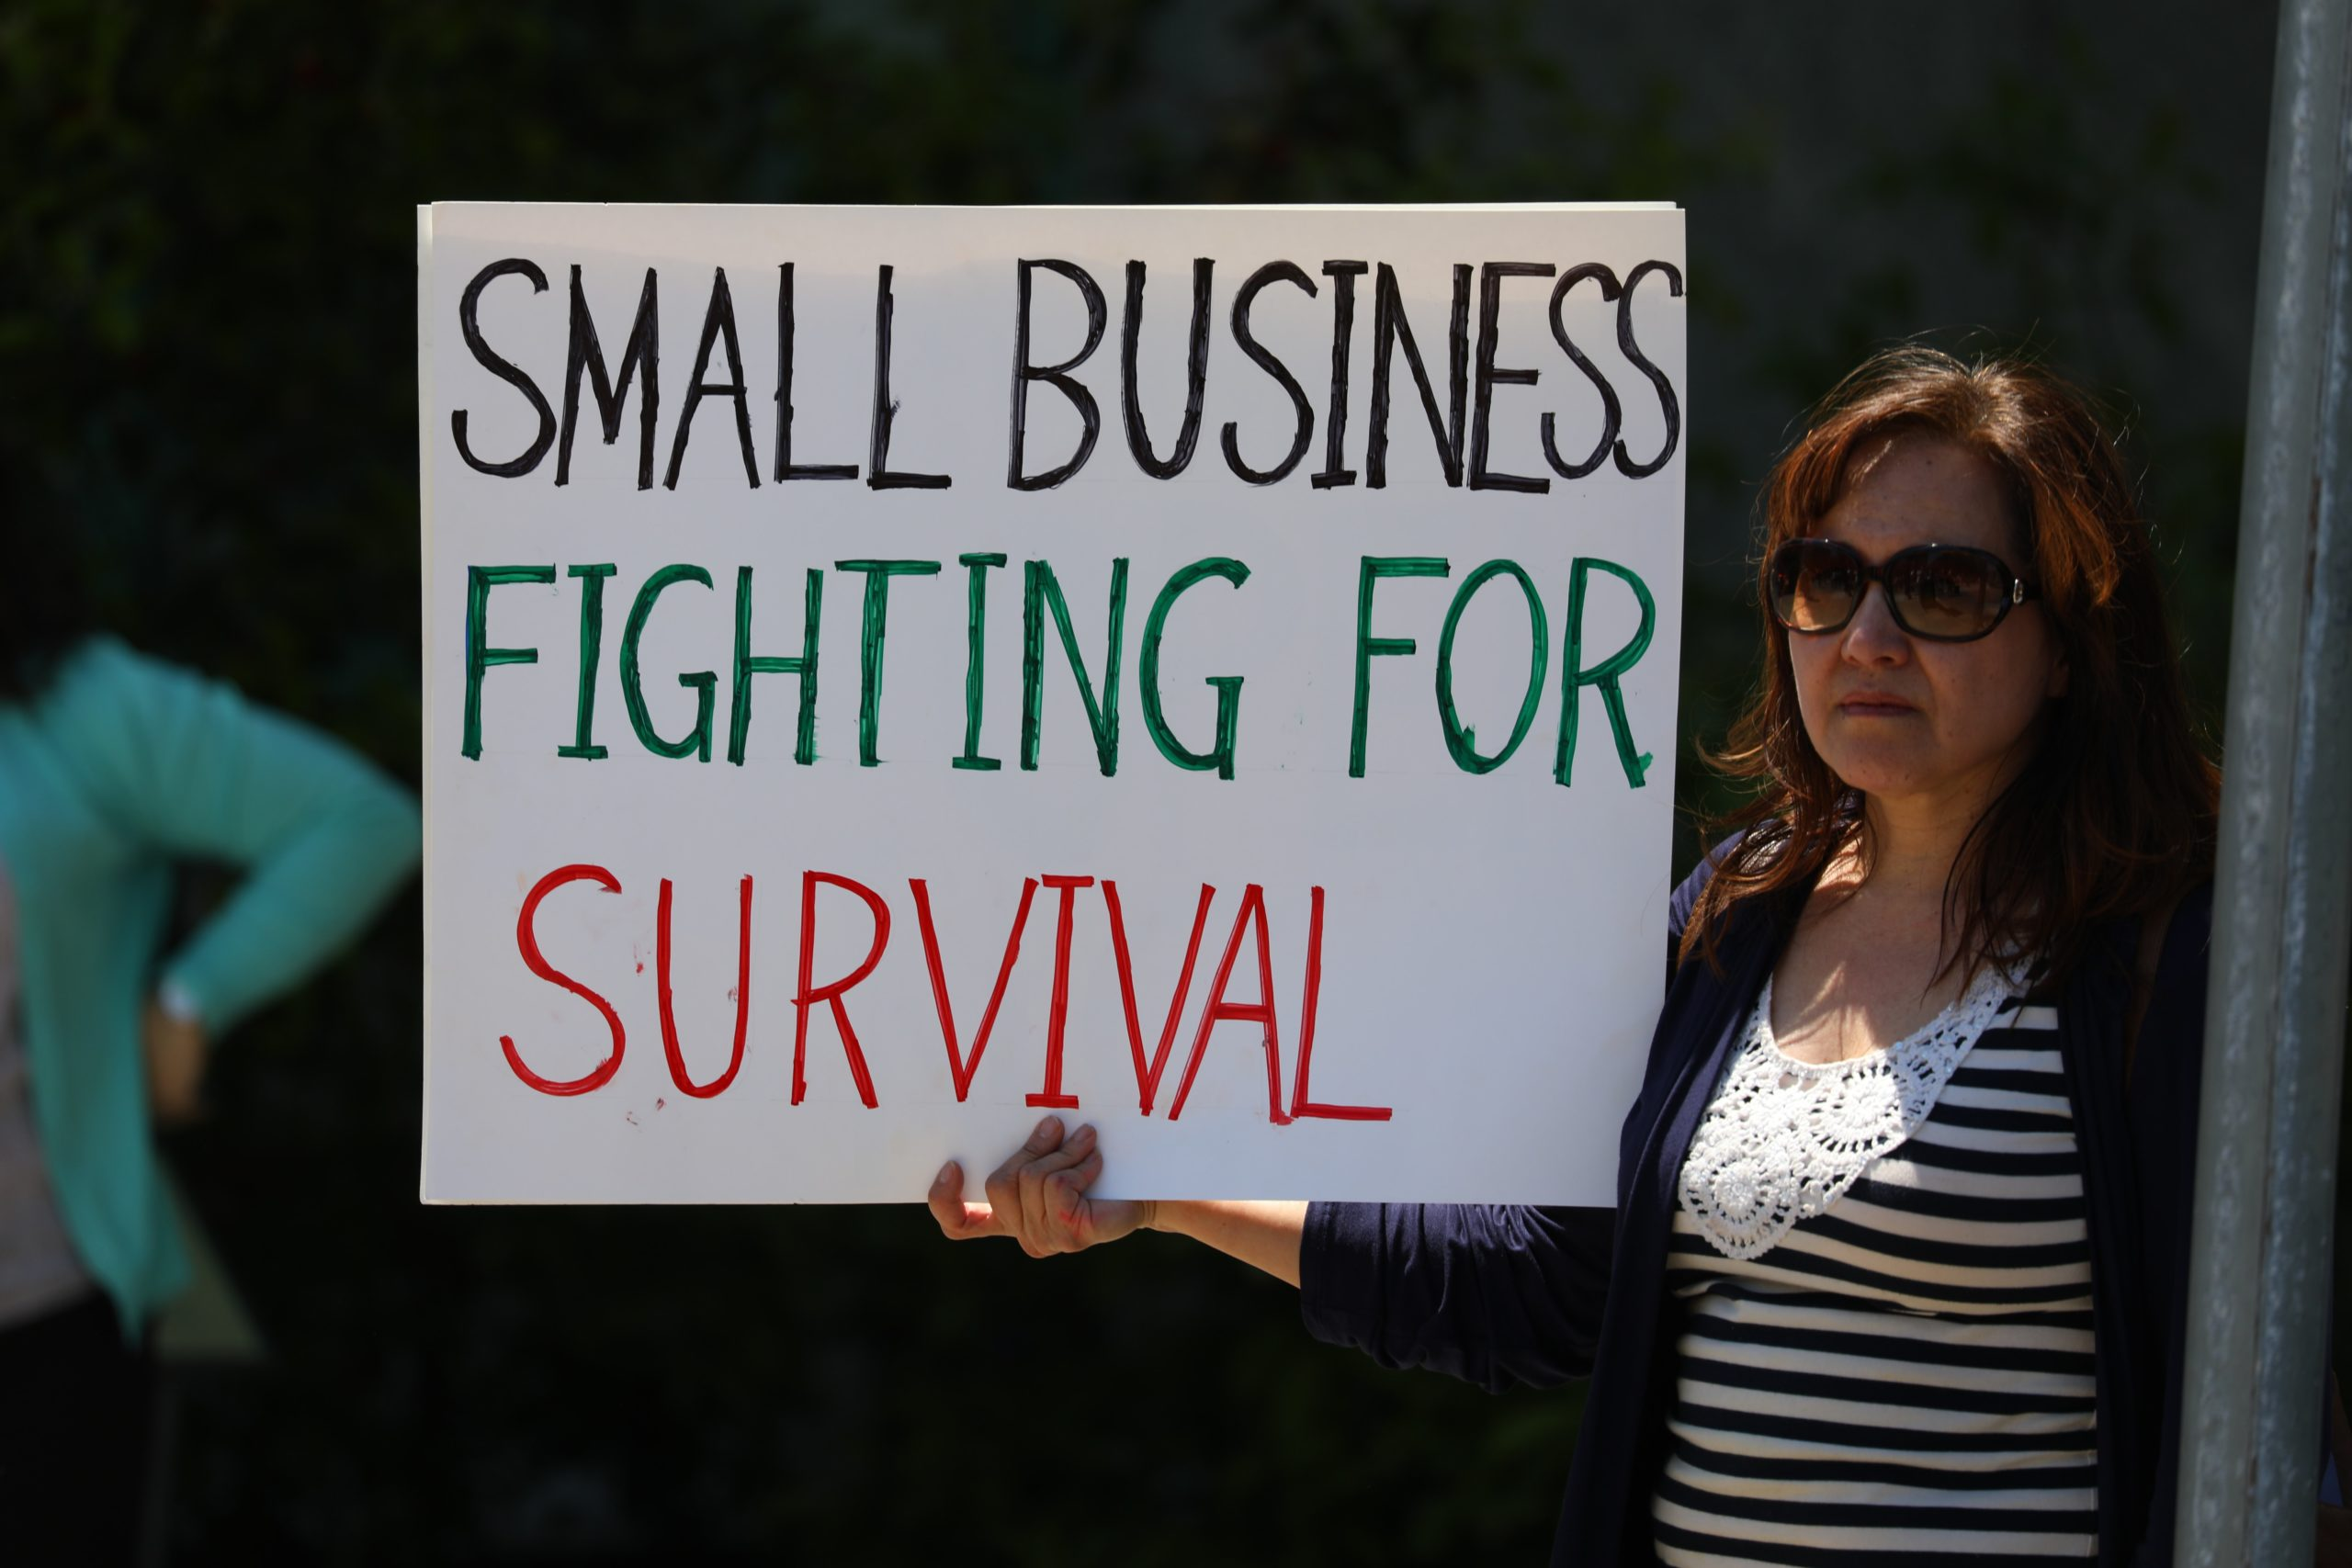 Small Businesses fighting for survival must begin to differentiate themselves